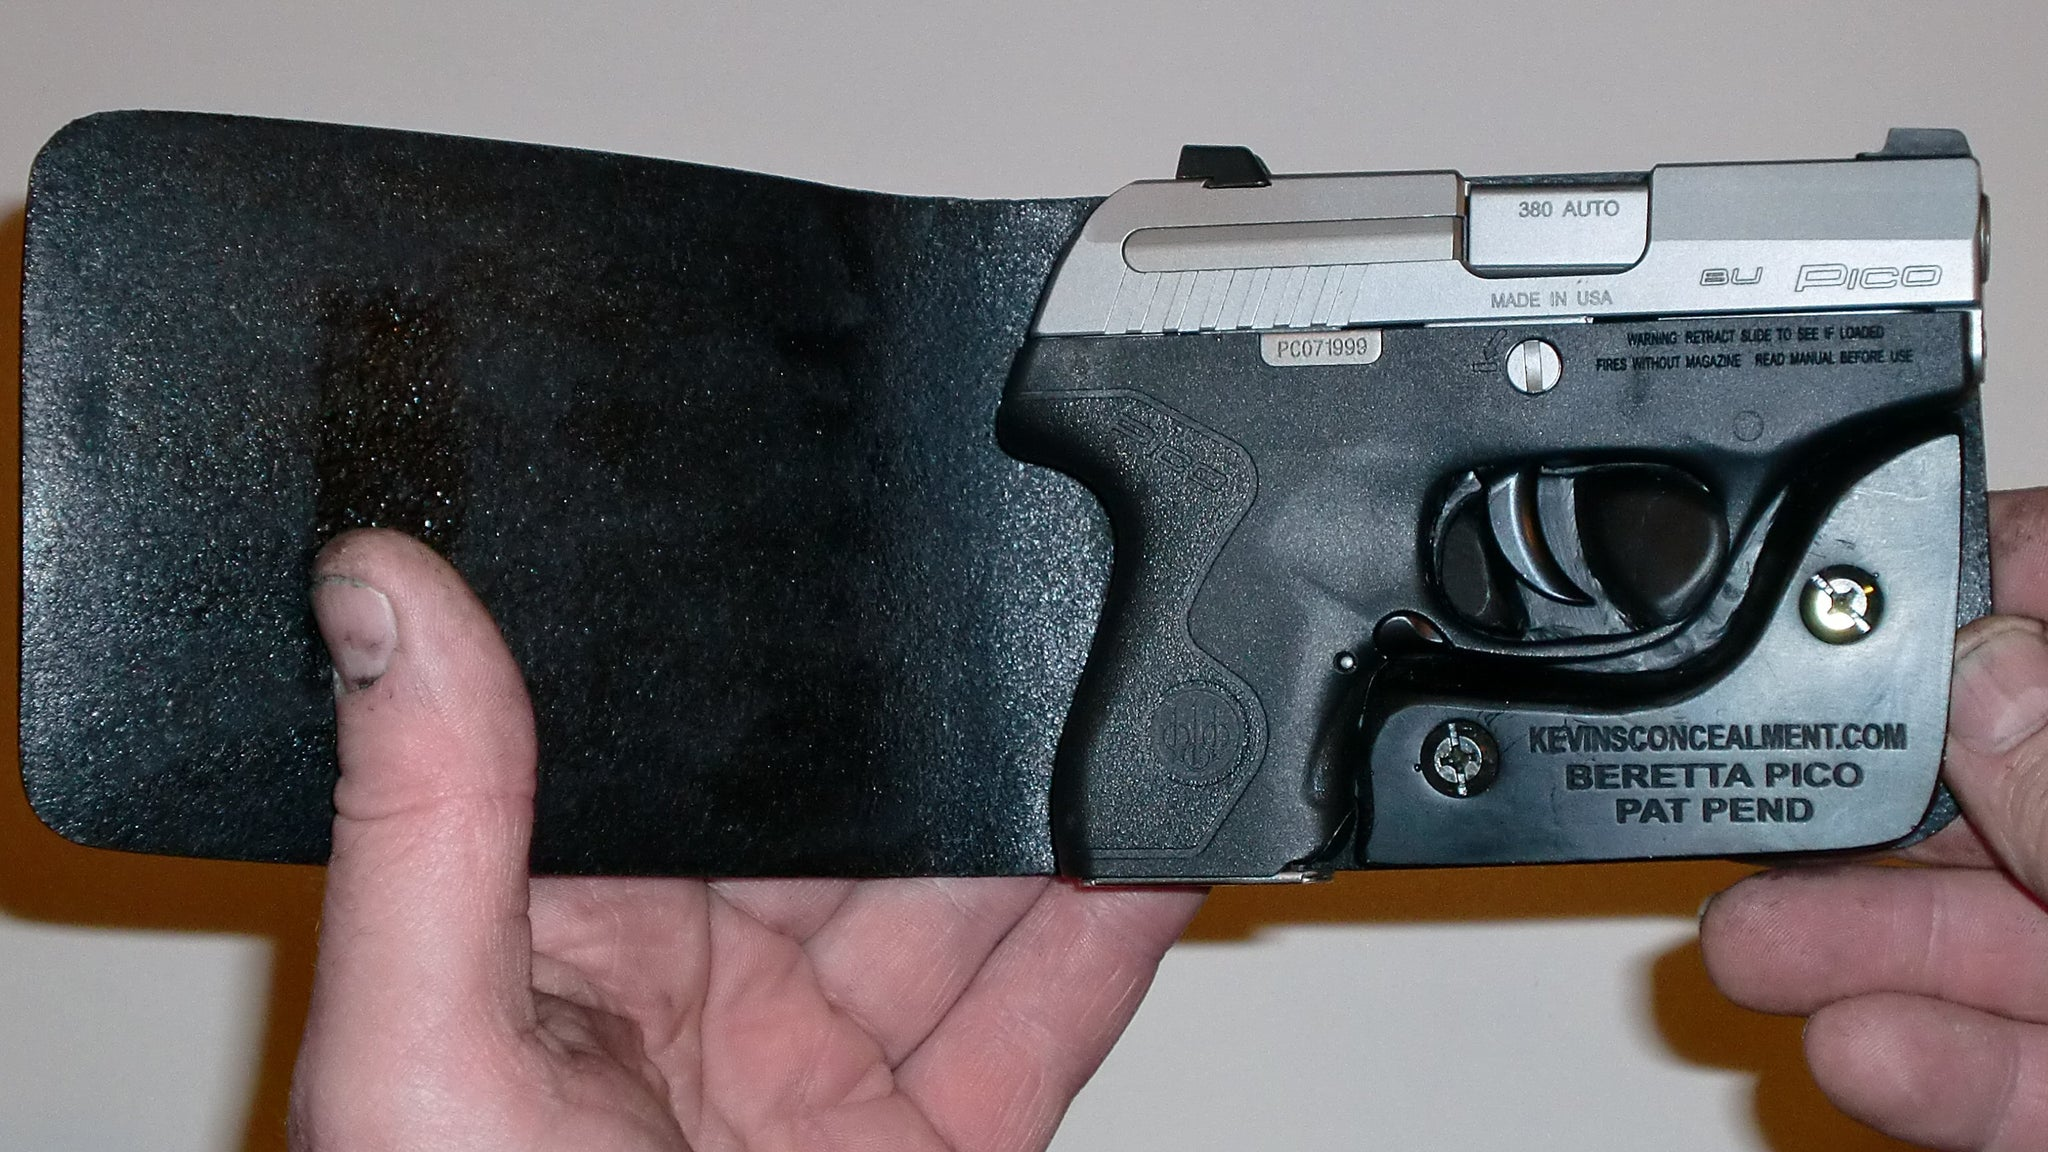 Wallet Holster For Full Concealment - Beretta Pico